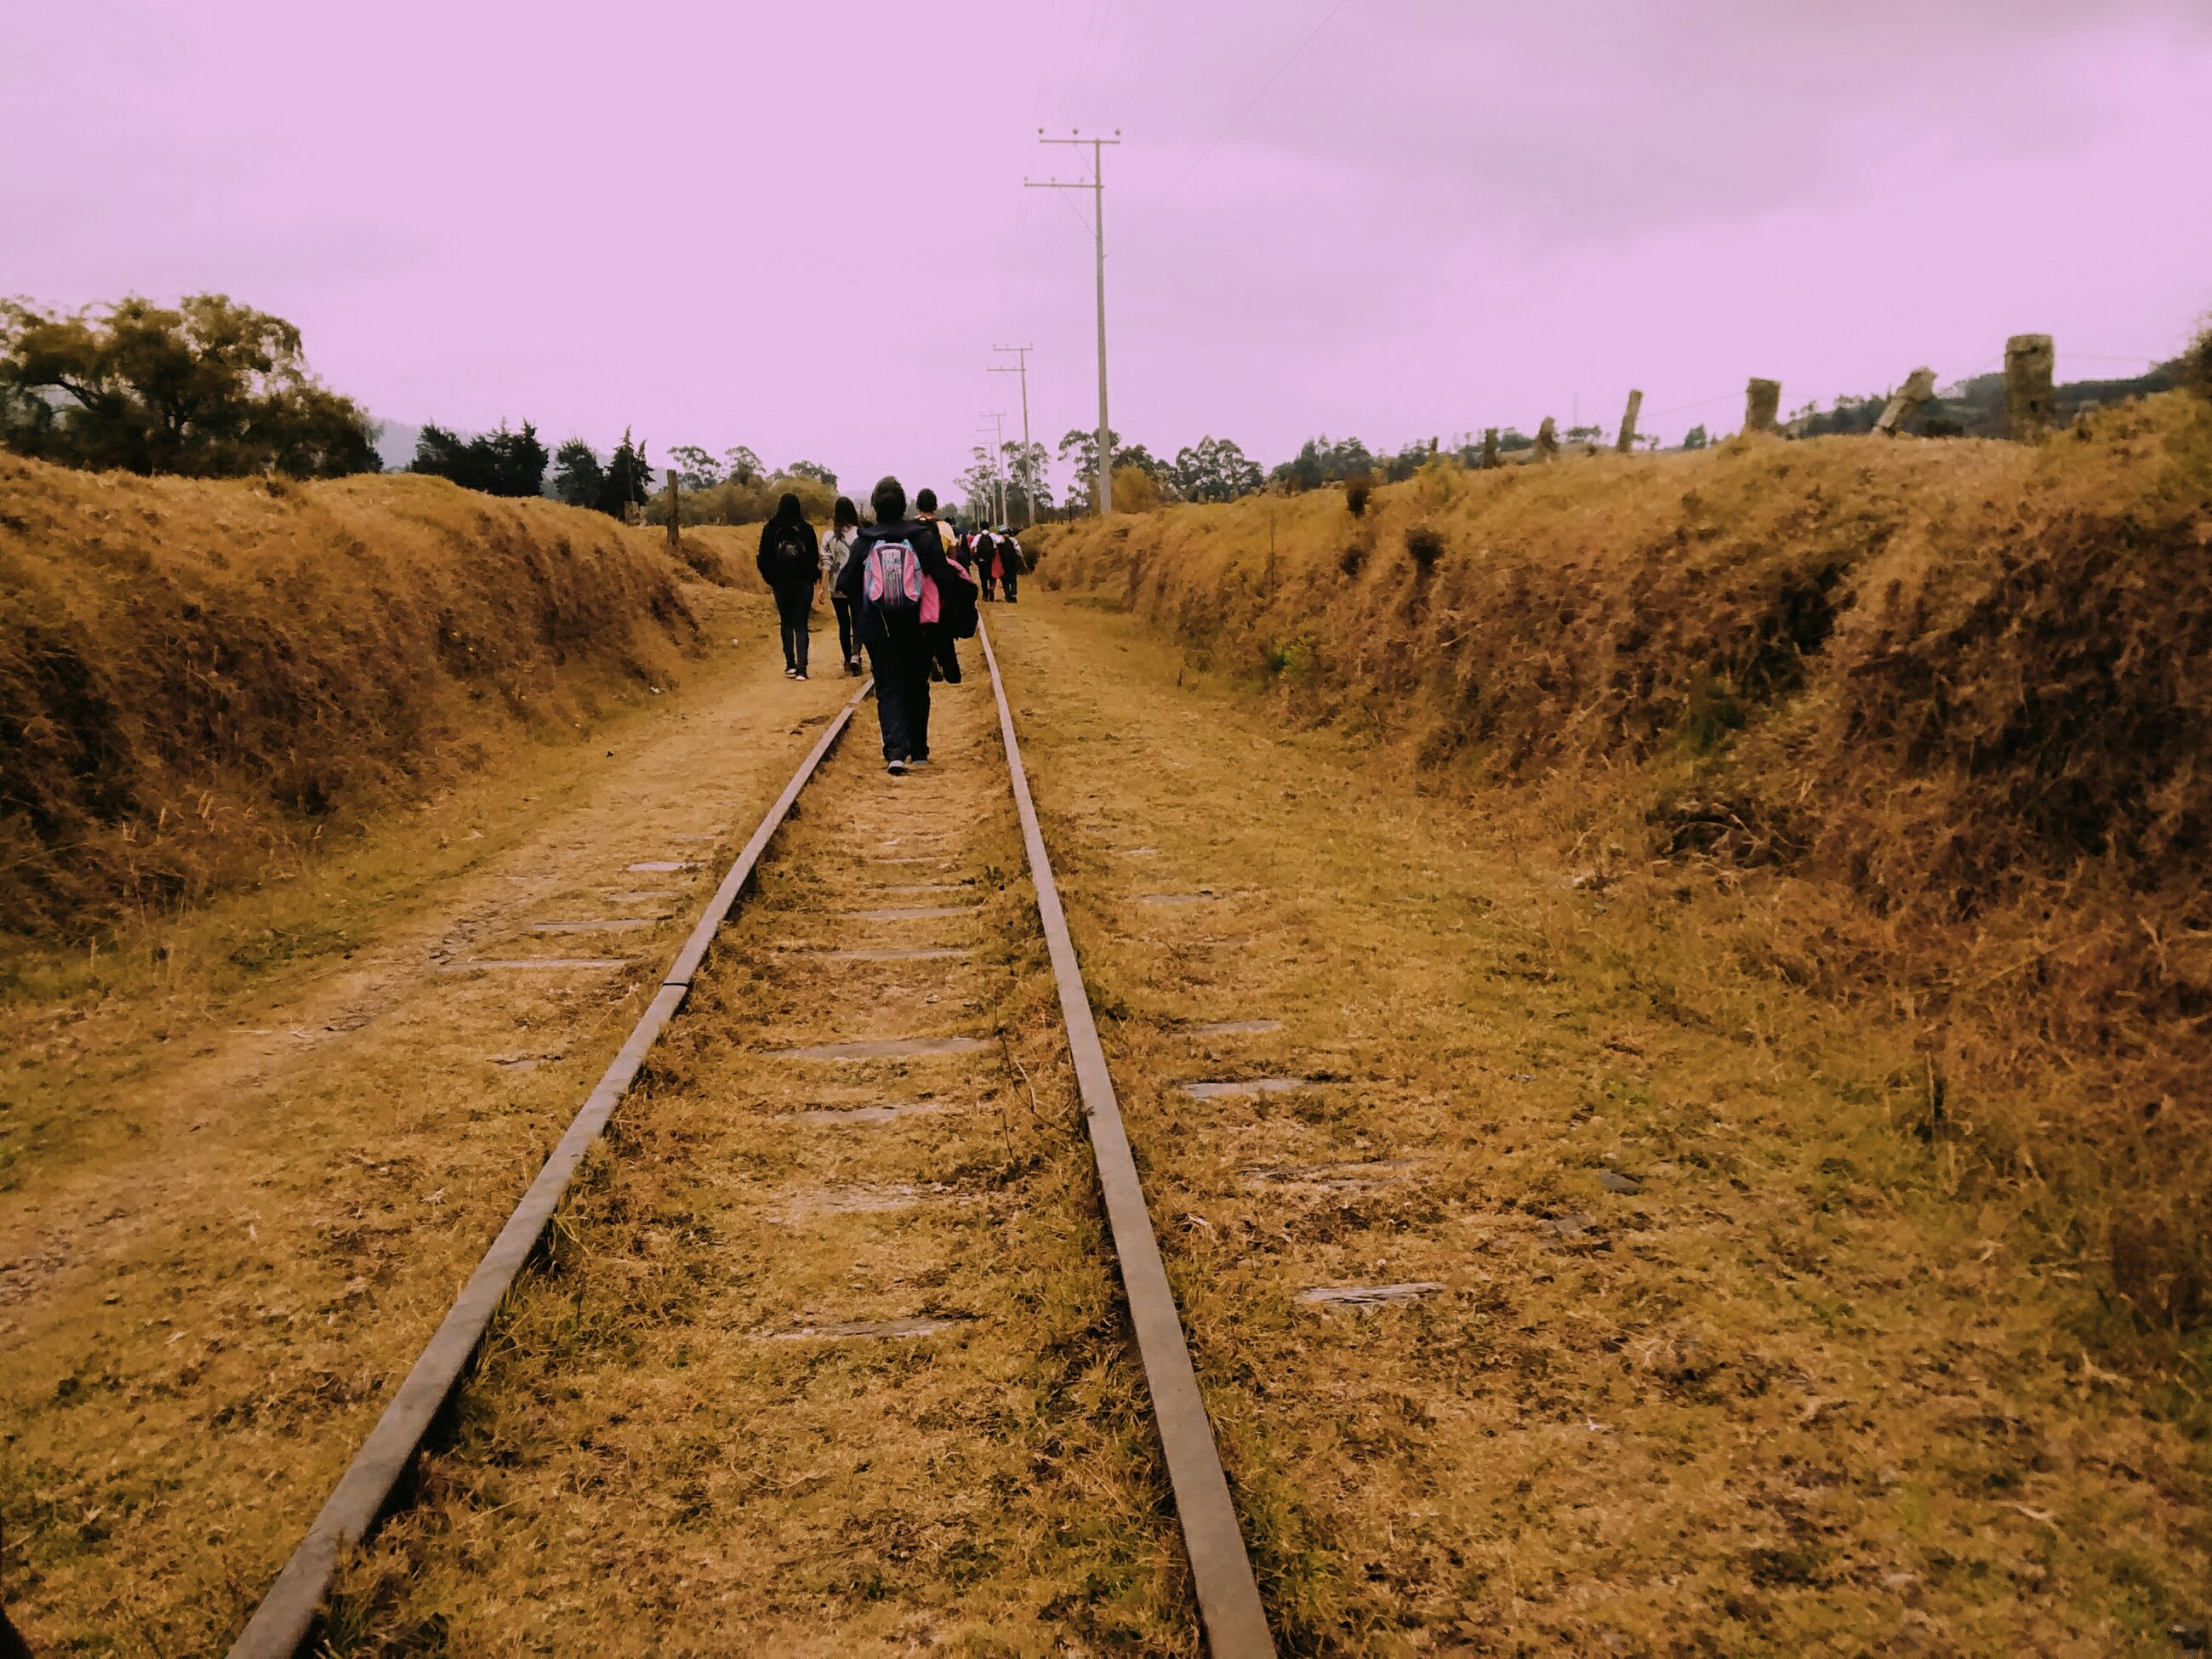 the way forward, walking, men, rear view, full length, sky, lifestyles, leisure activity, diminishing perspective, landscape, person, vanishing point, transportation, dirt road, nature, field, grass, tree